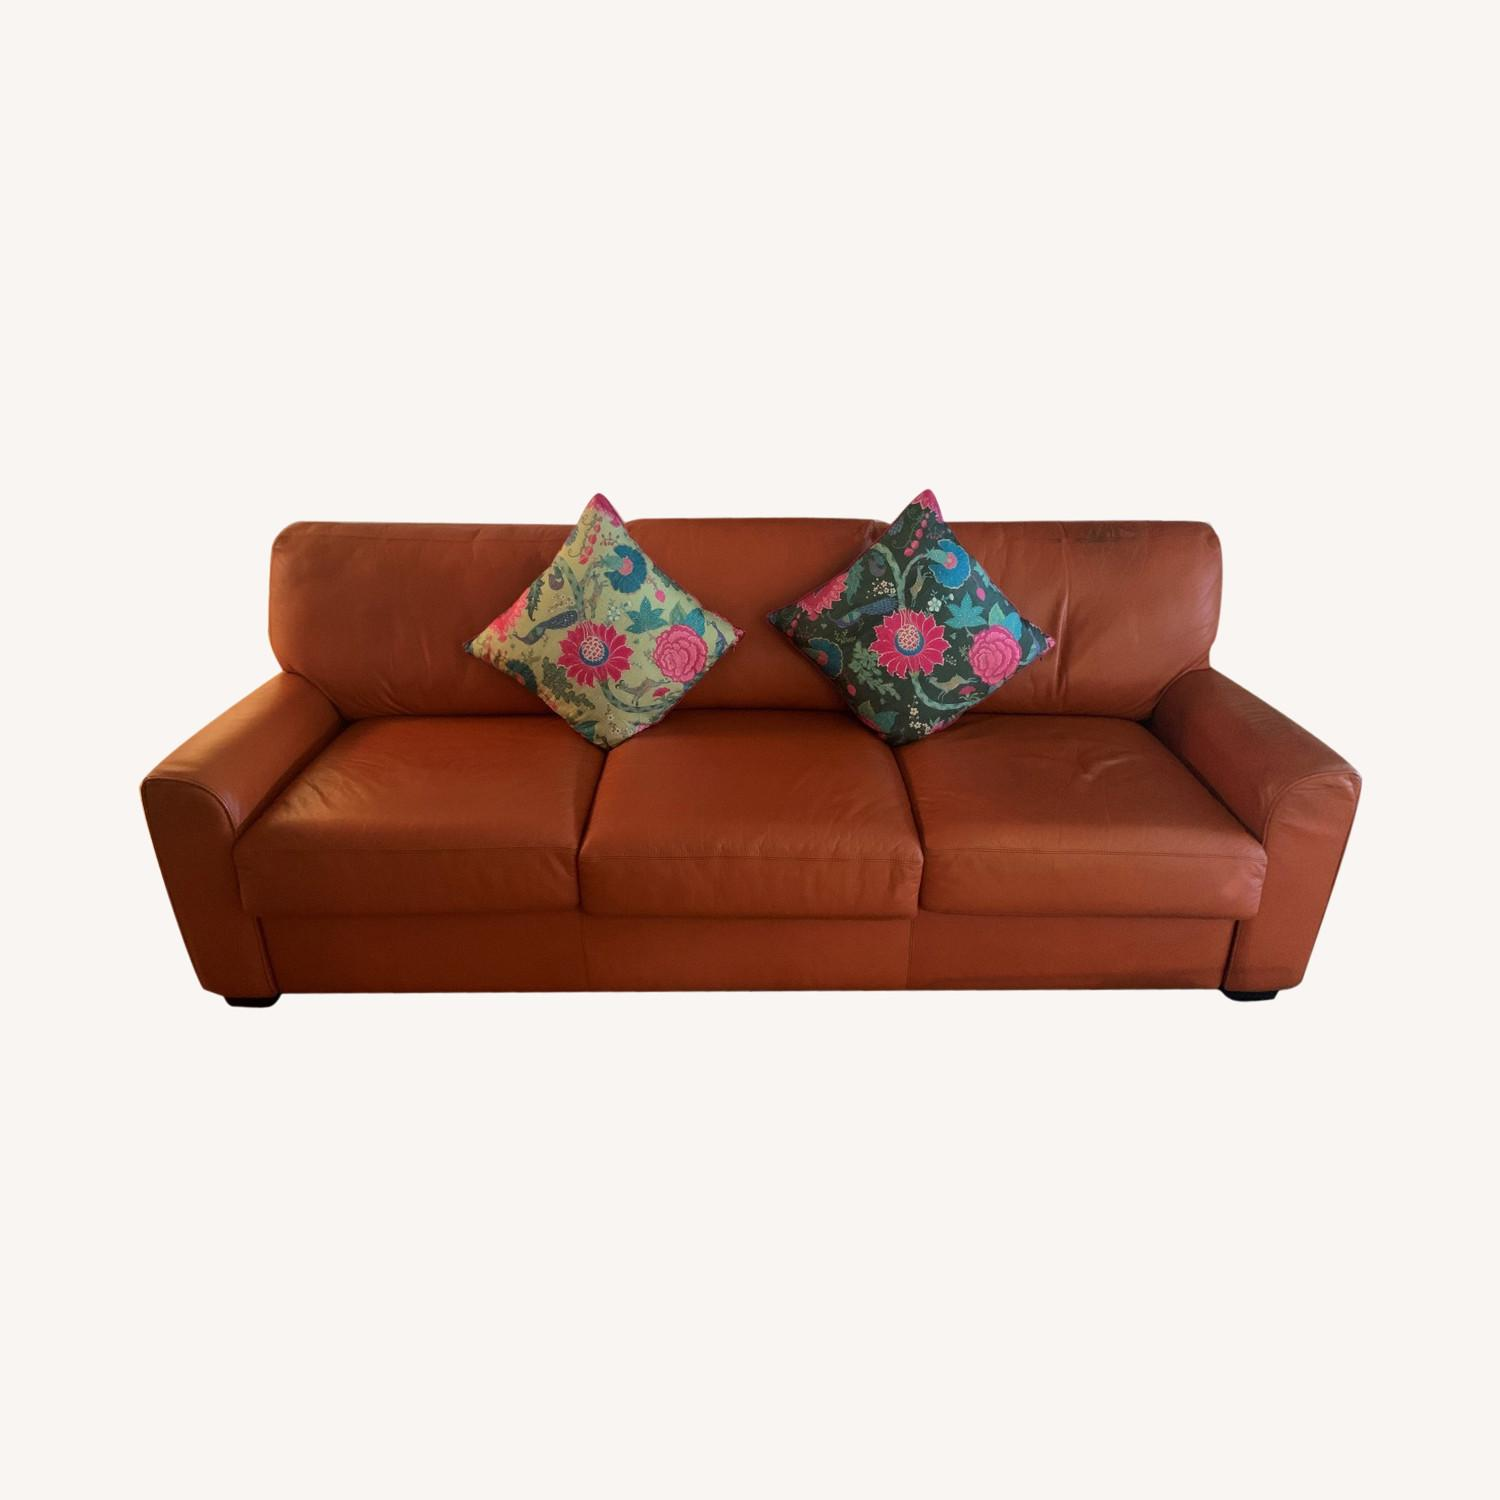 Orange Leather Sofa Bed (King) - image-0